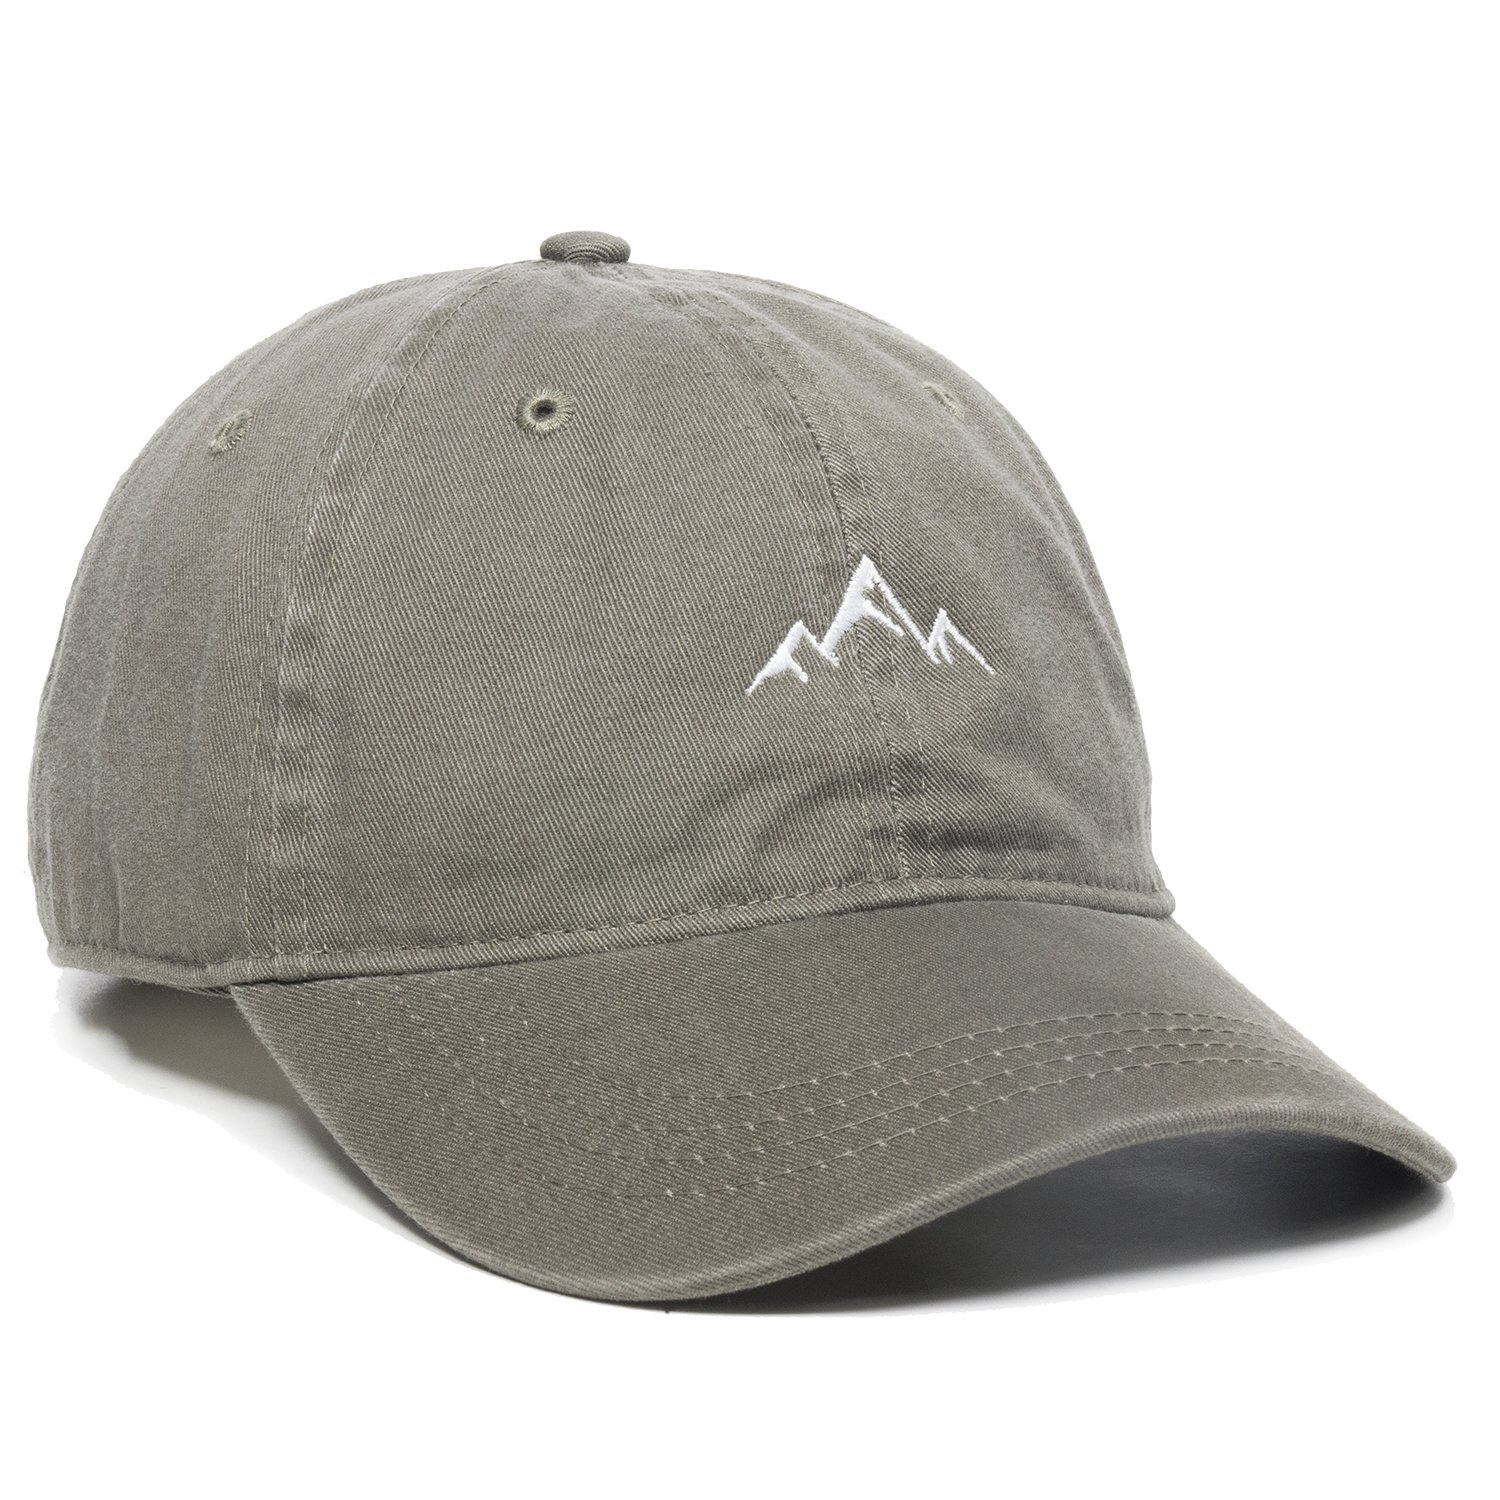 Outdoor Cap Mountain Dad Hat - Unstructured Soft Cotton Cap Black One Size Outdoor Cap -- Dropship AMZ4067459